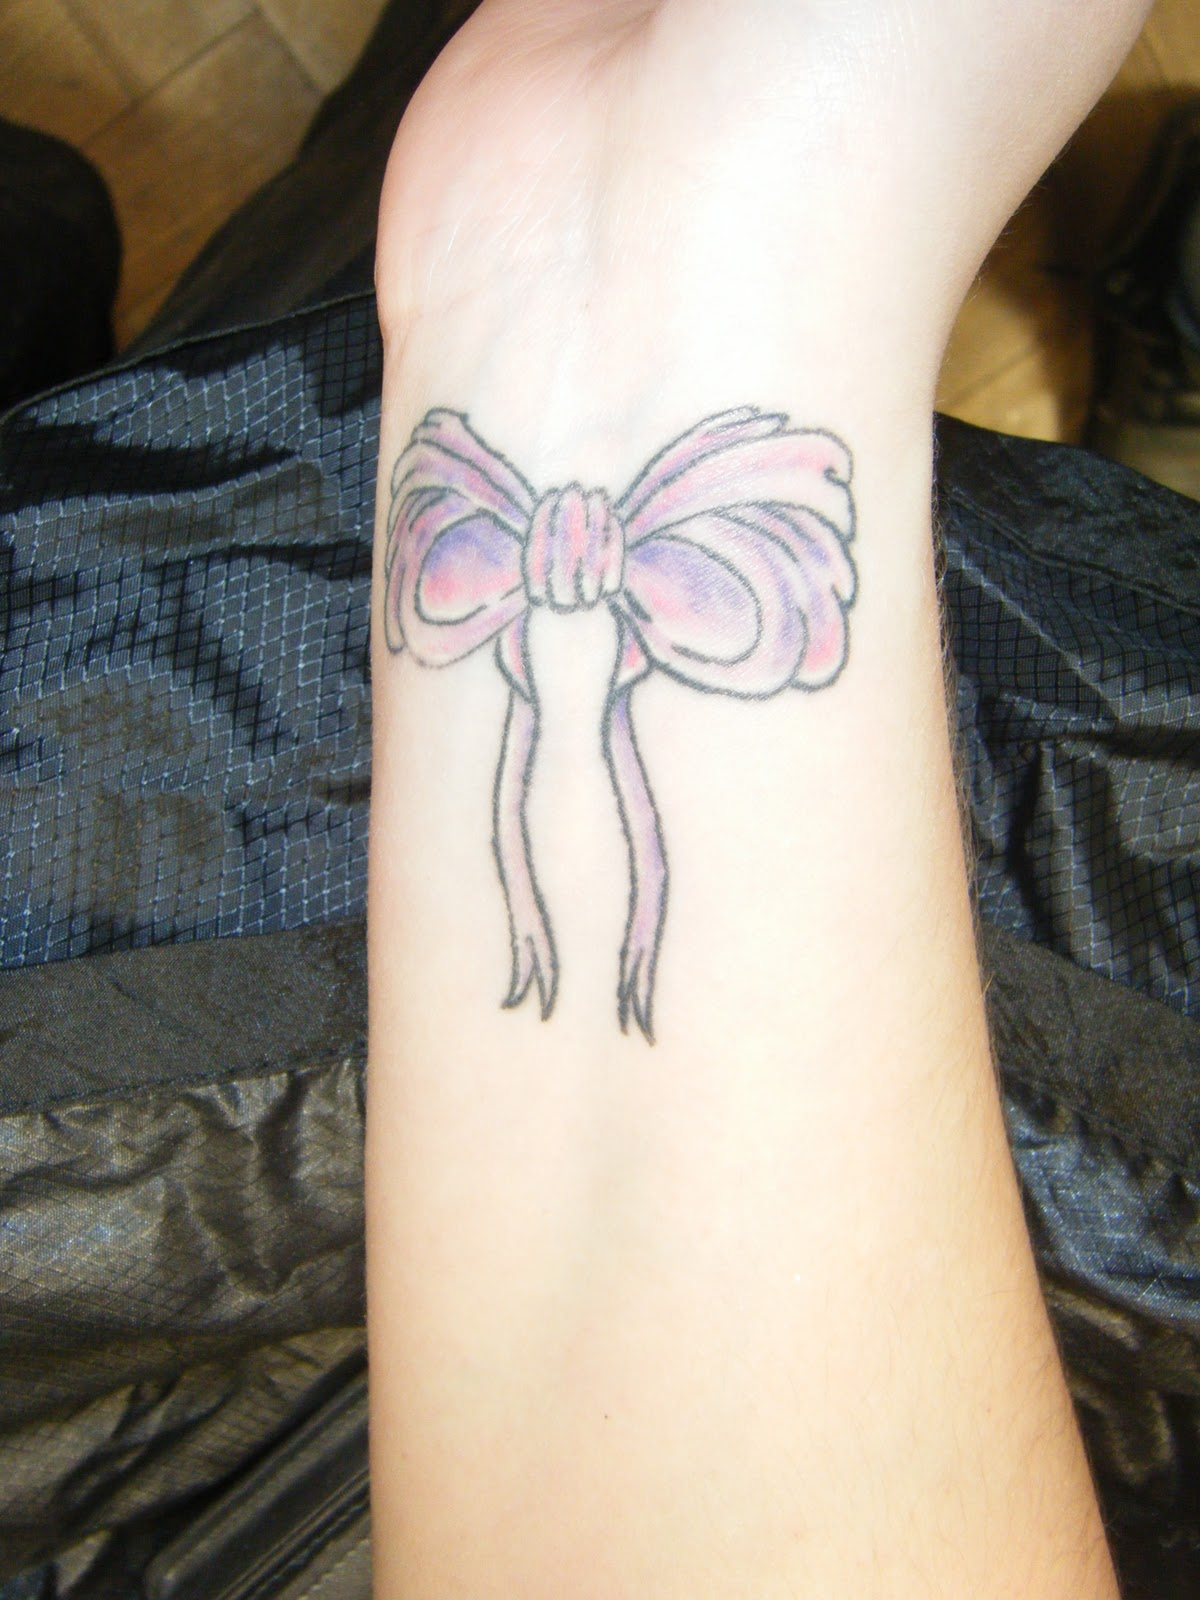 Afrenchieforyourthoughts Bow Tattoos Pictures Part 01